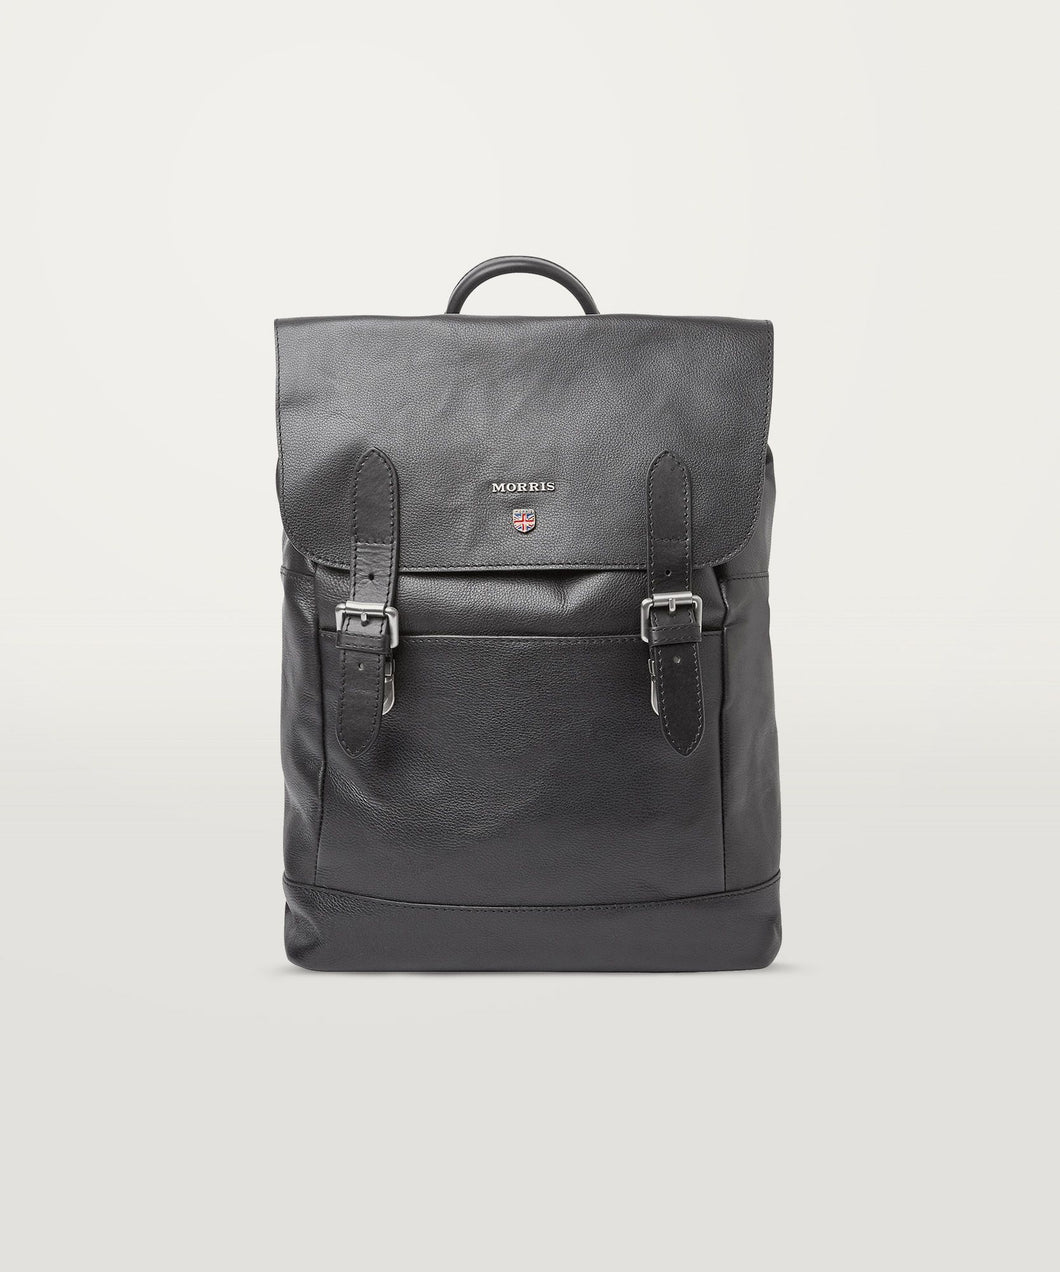 Brydon Leather Backpack Black - Morris Stockholm